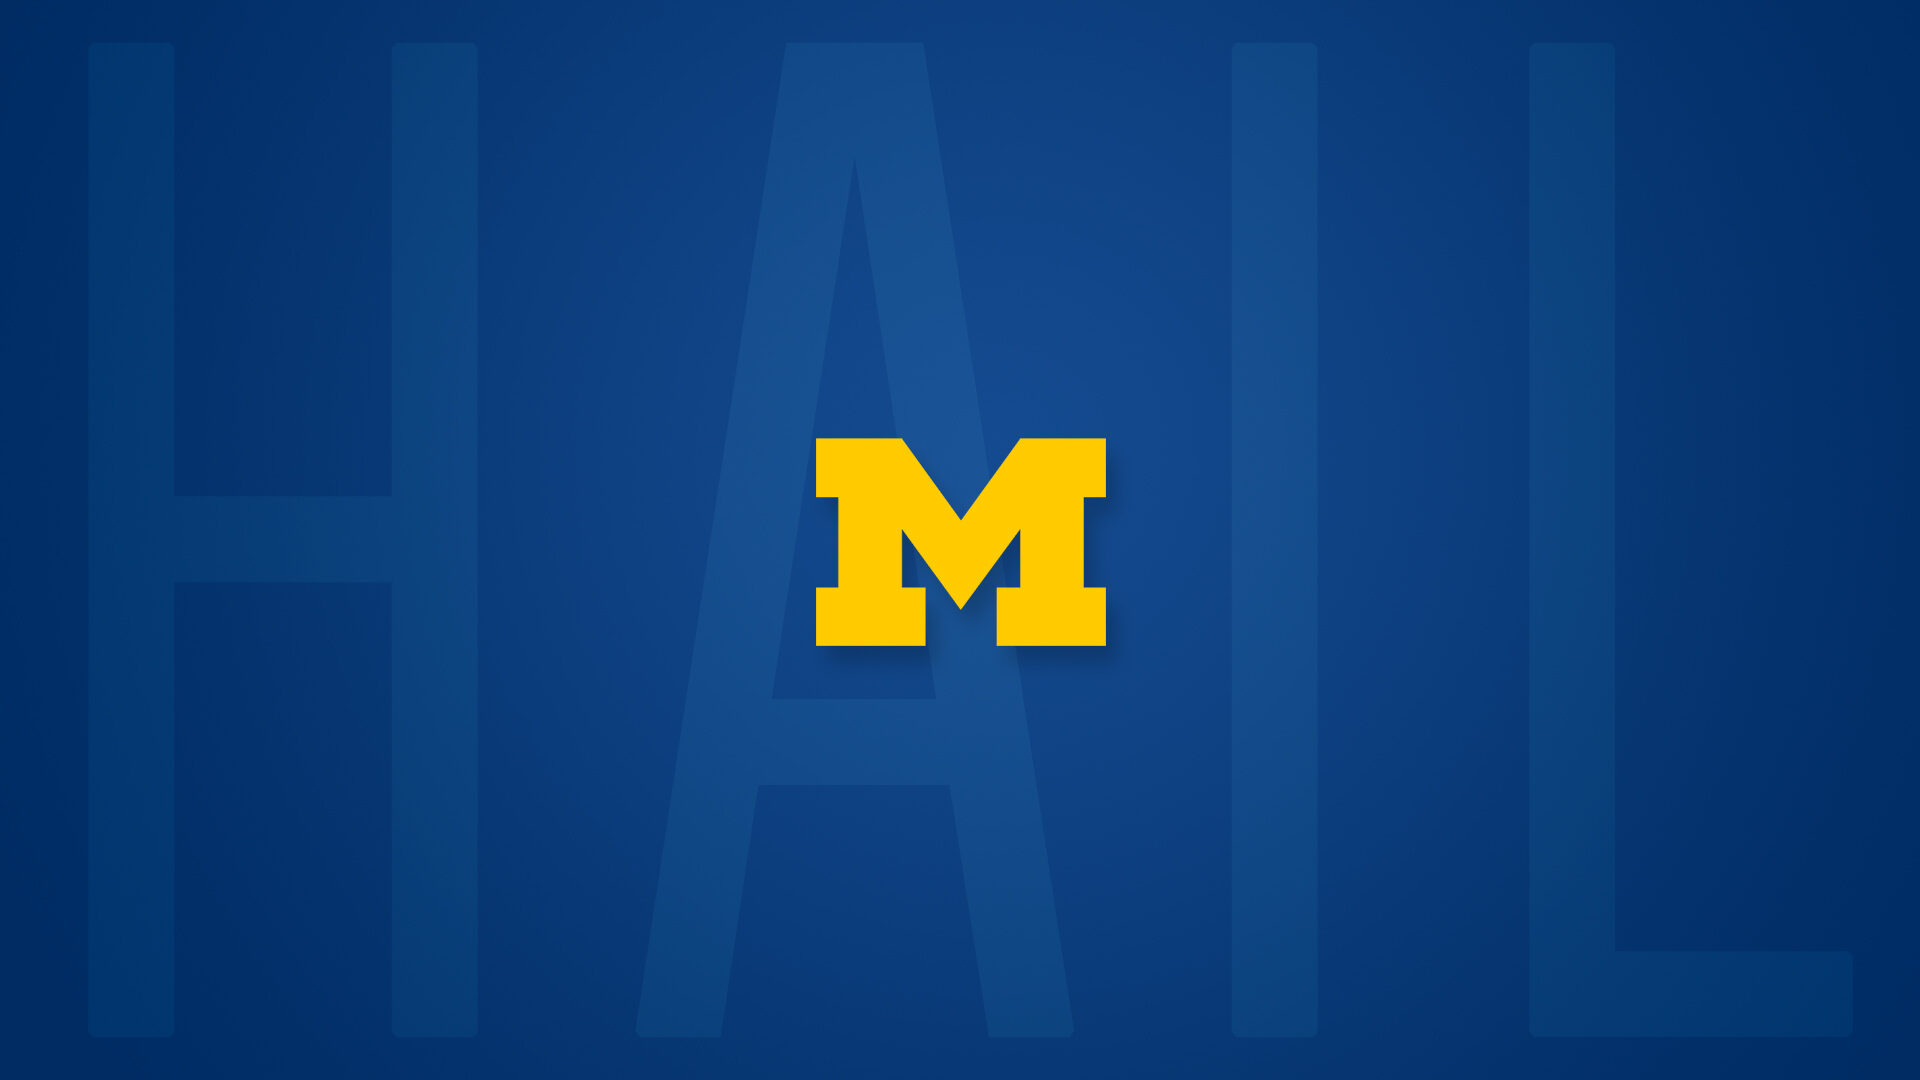 M M Desktop Wallpaper: U-M Social Media